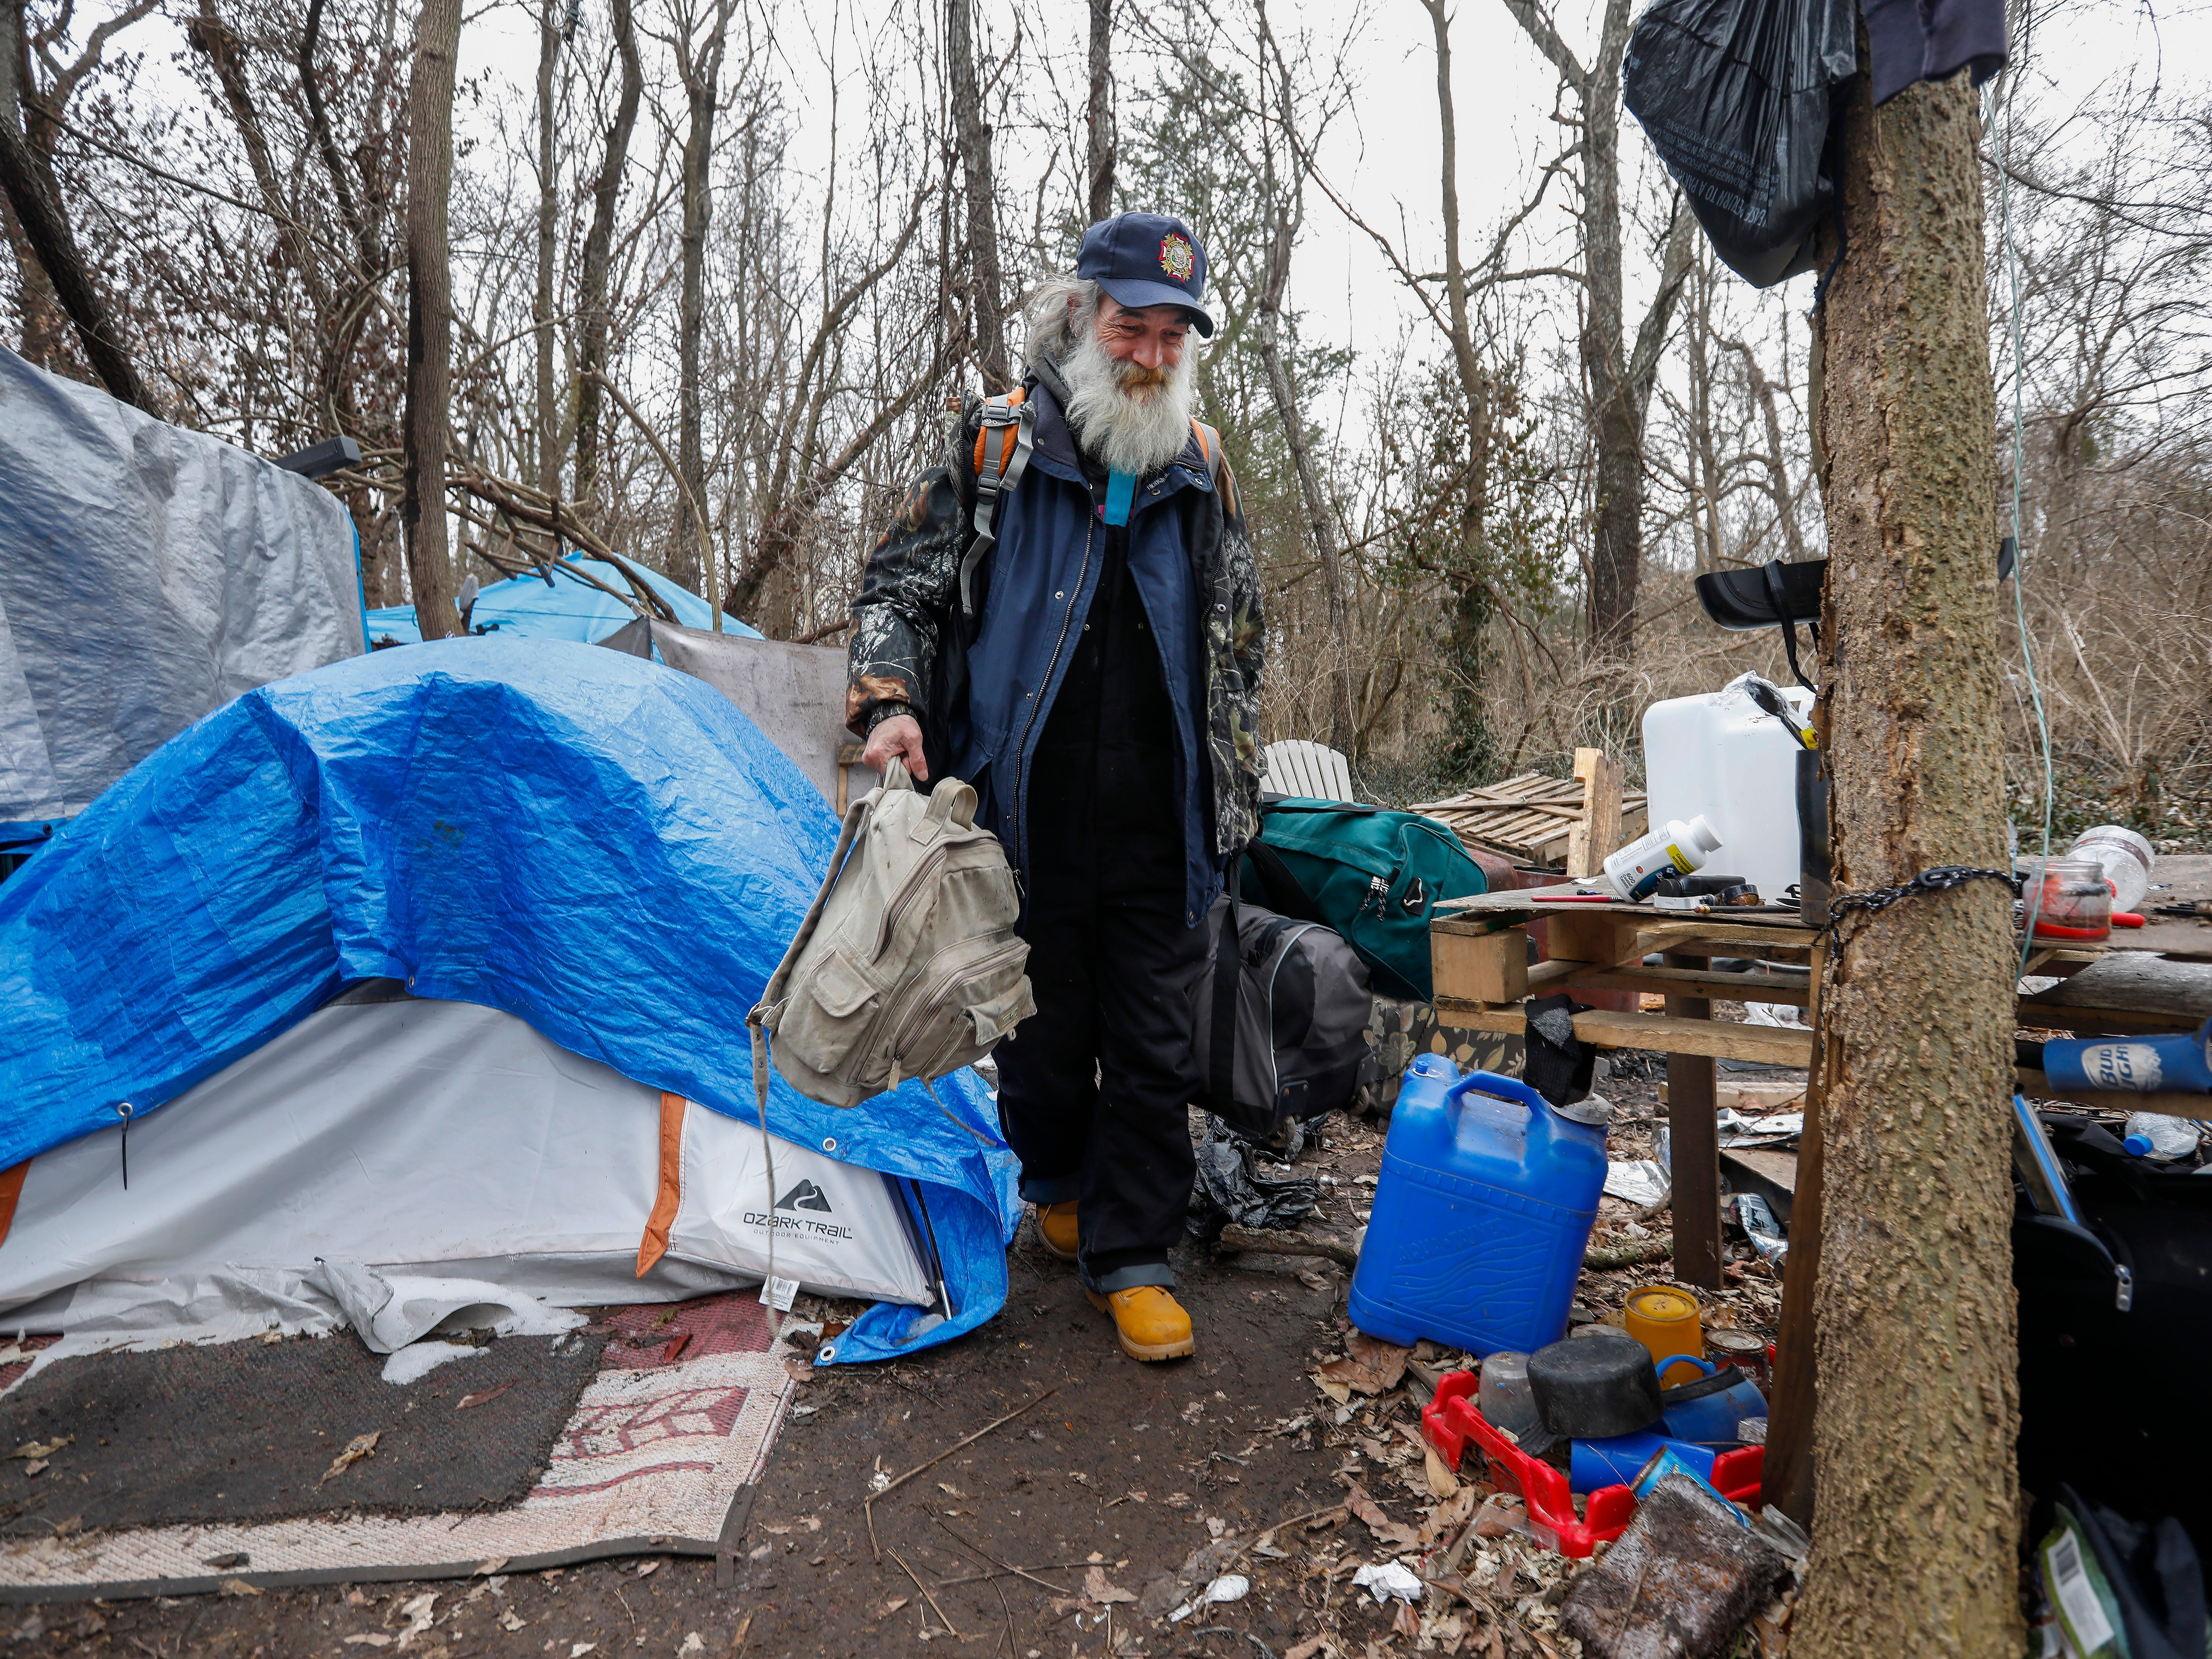 Gil Rife, who has been homeless for 3 years, carries his belongings out of the homeless camp he had been living in as he prepared to move into Eden Village on Thursday, Feb. 21, 2019.